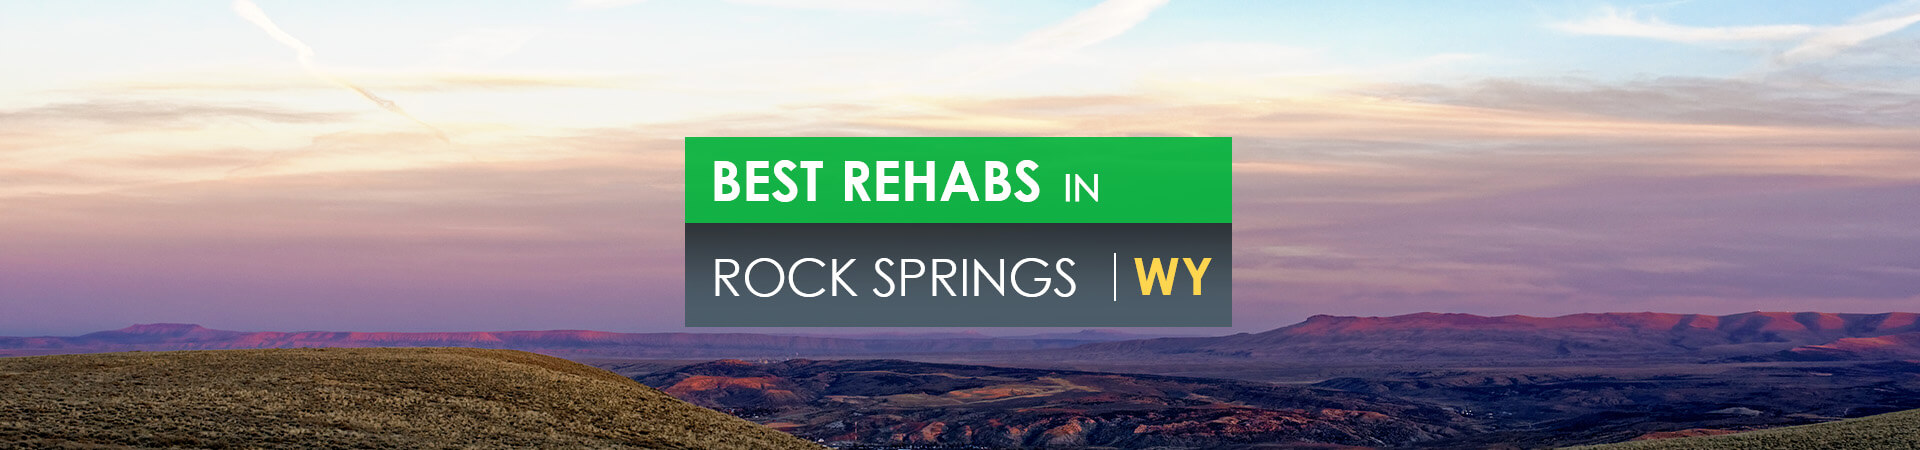 Best rehabs in Rock Springs, WY